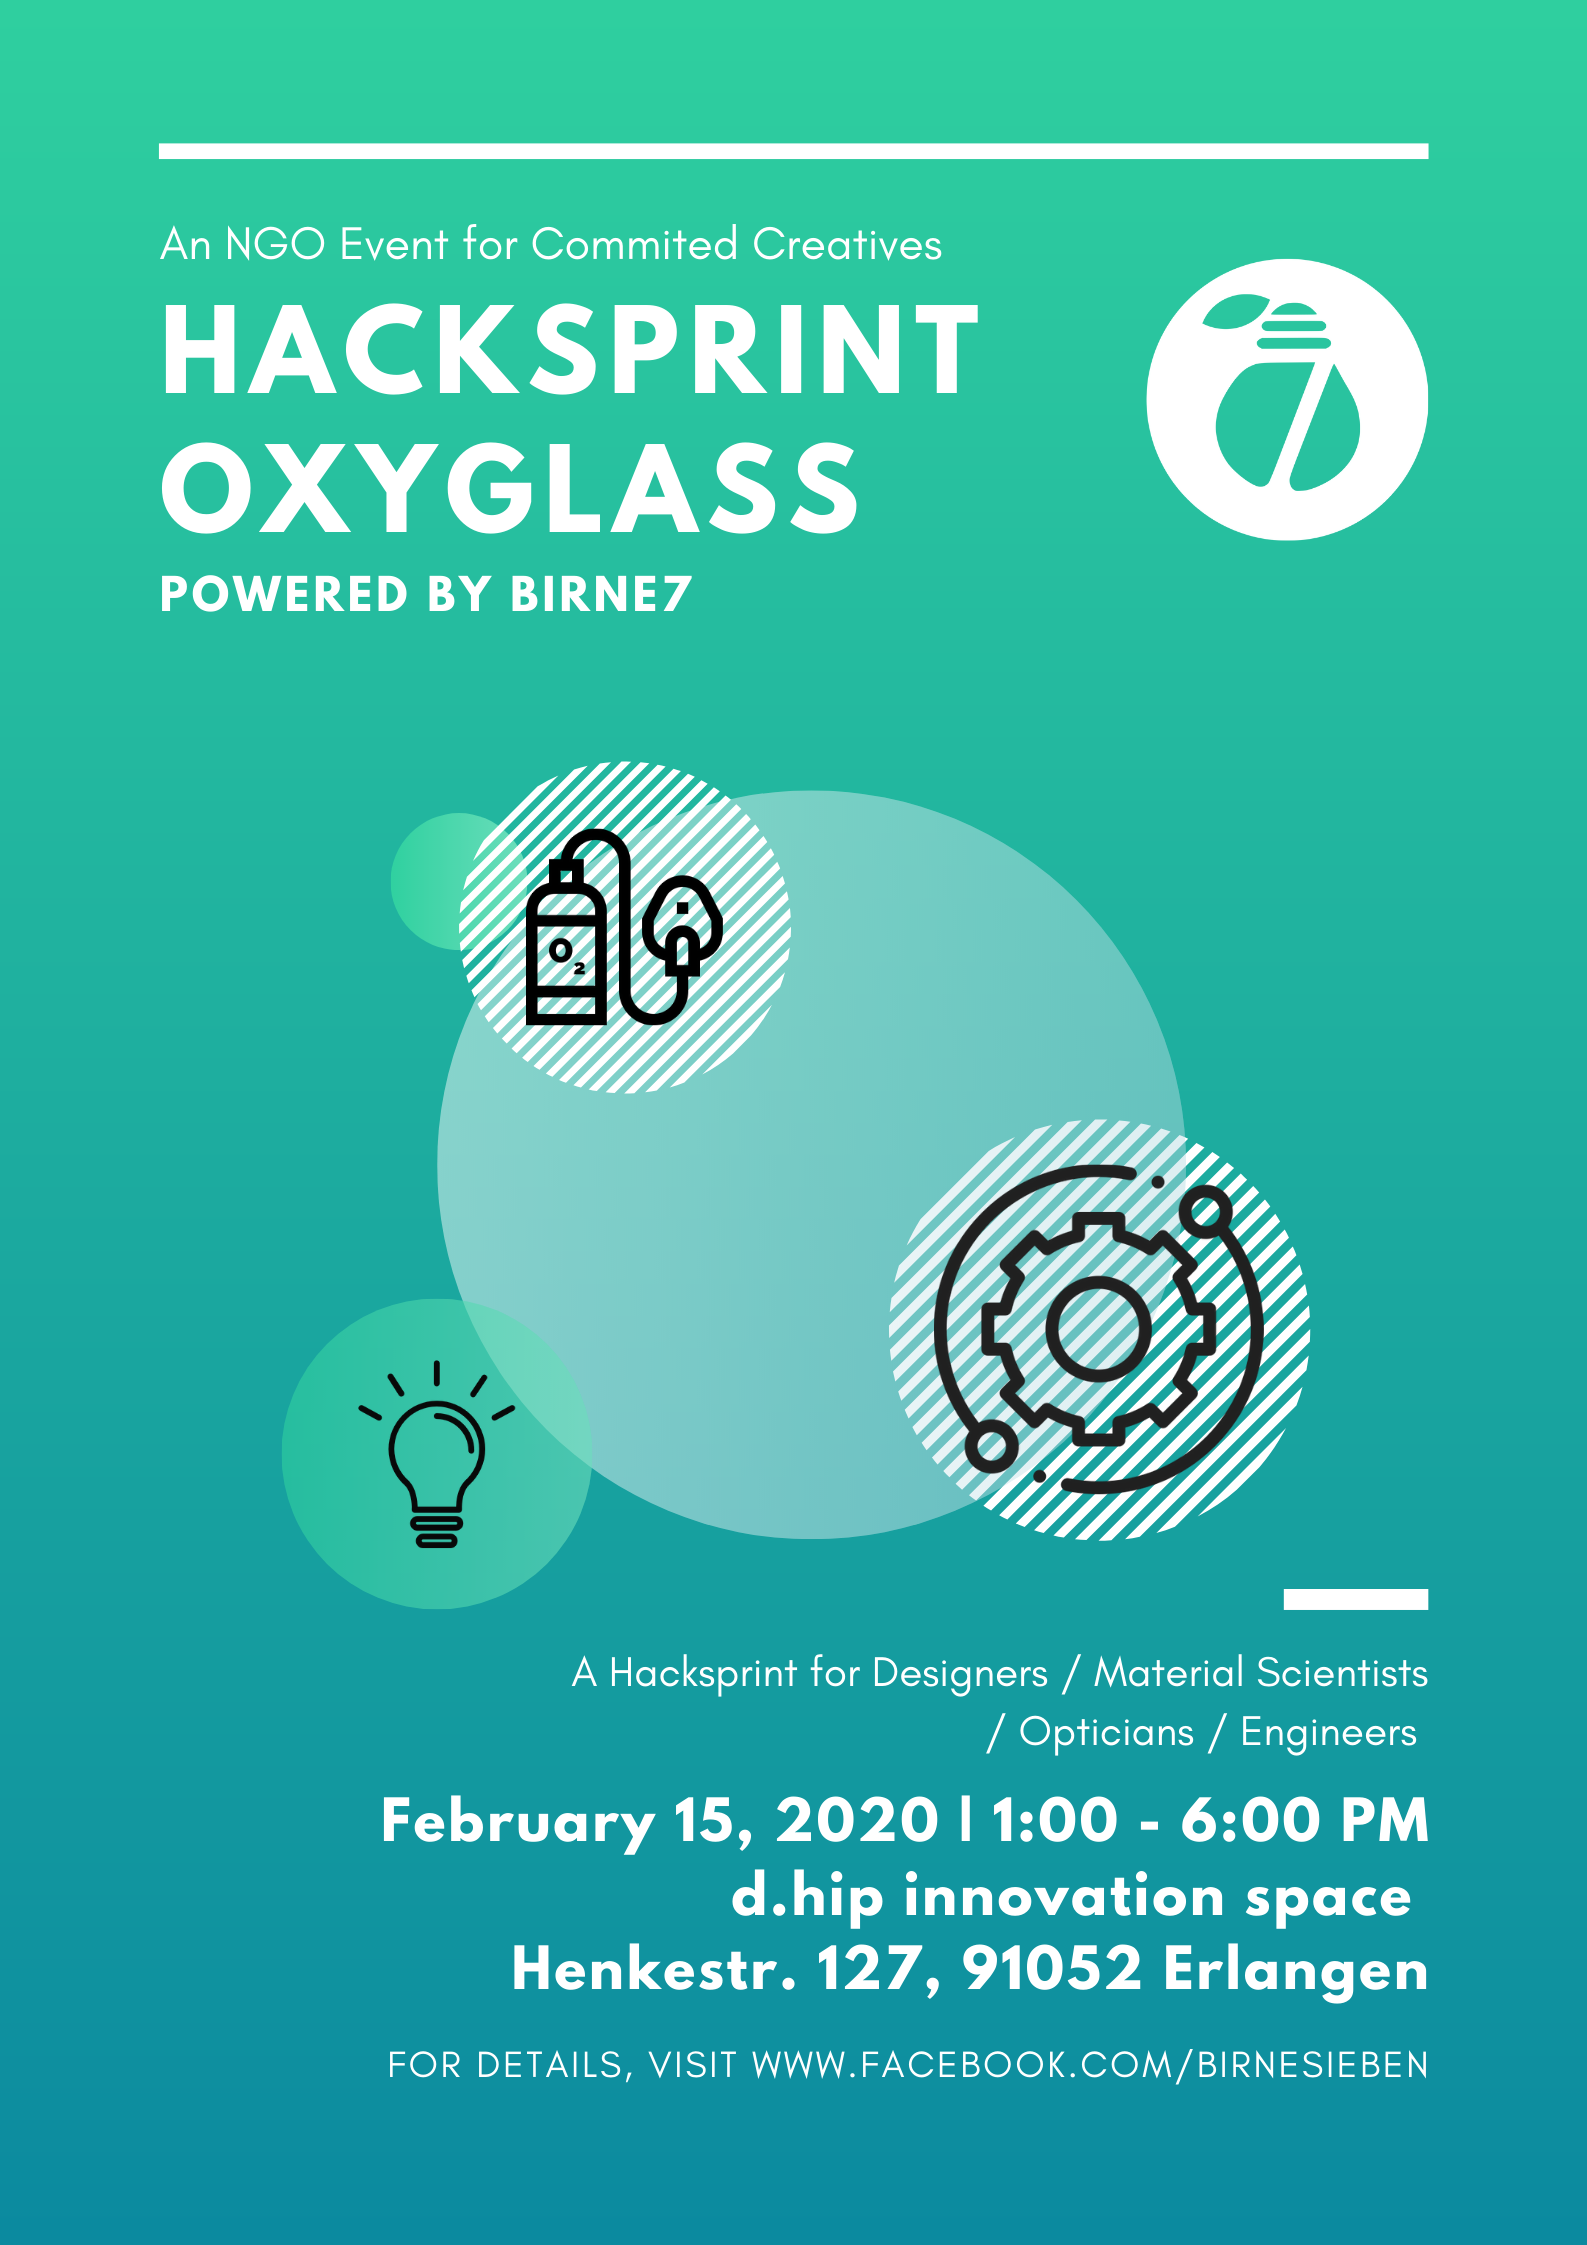 Oxyglass Hacksprint am 15.02.2020 um 13:00 Uhr, Digital Health Innovation Platform (d.hip), Henkestr. 127, Erlangen